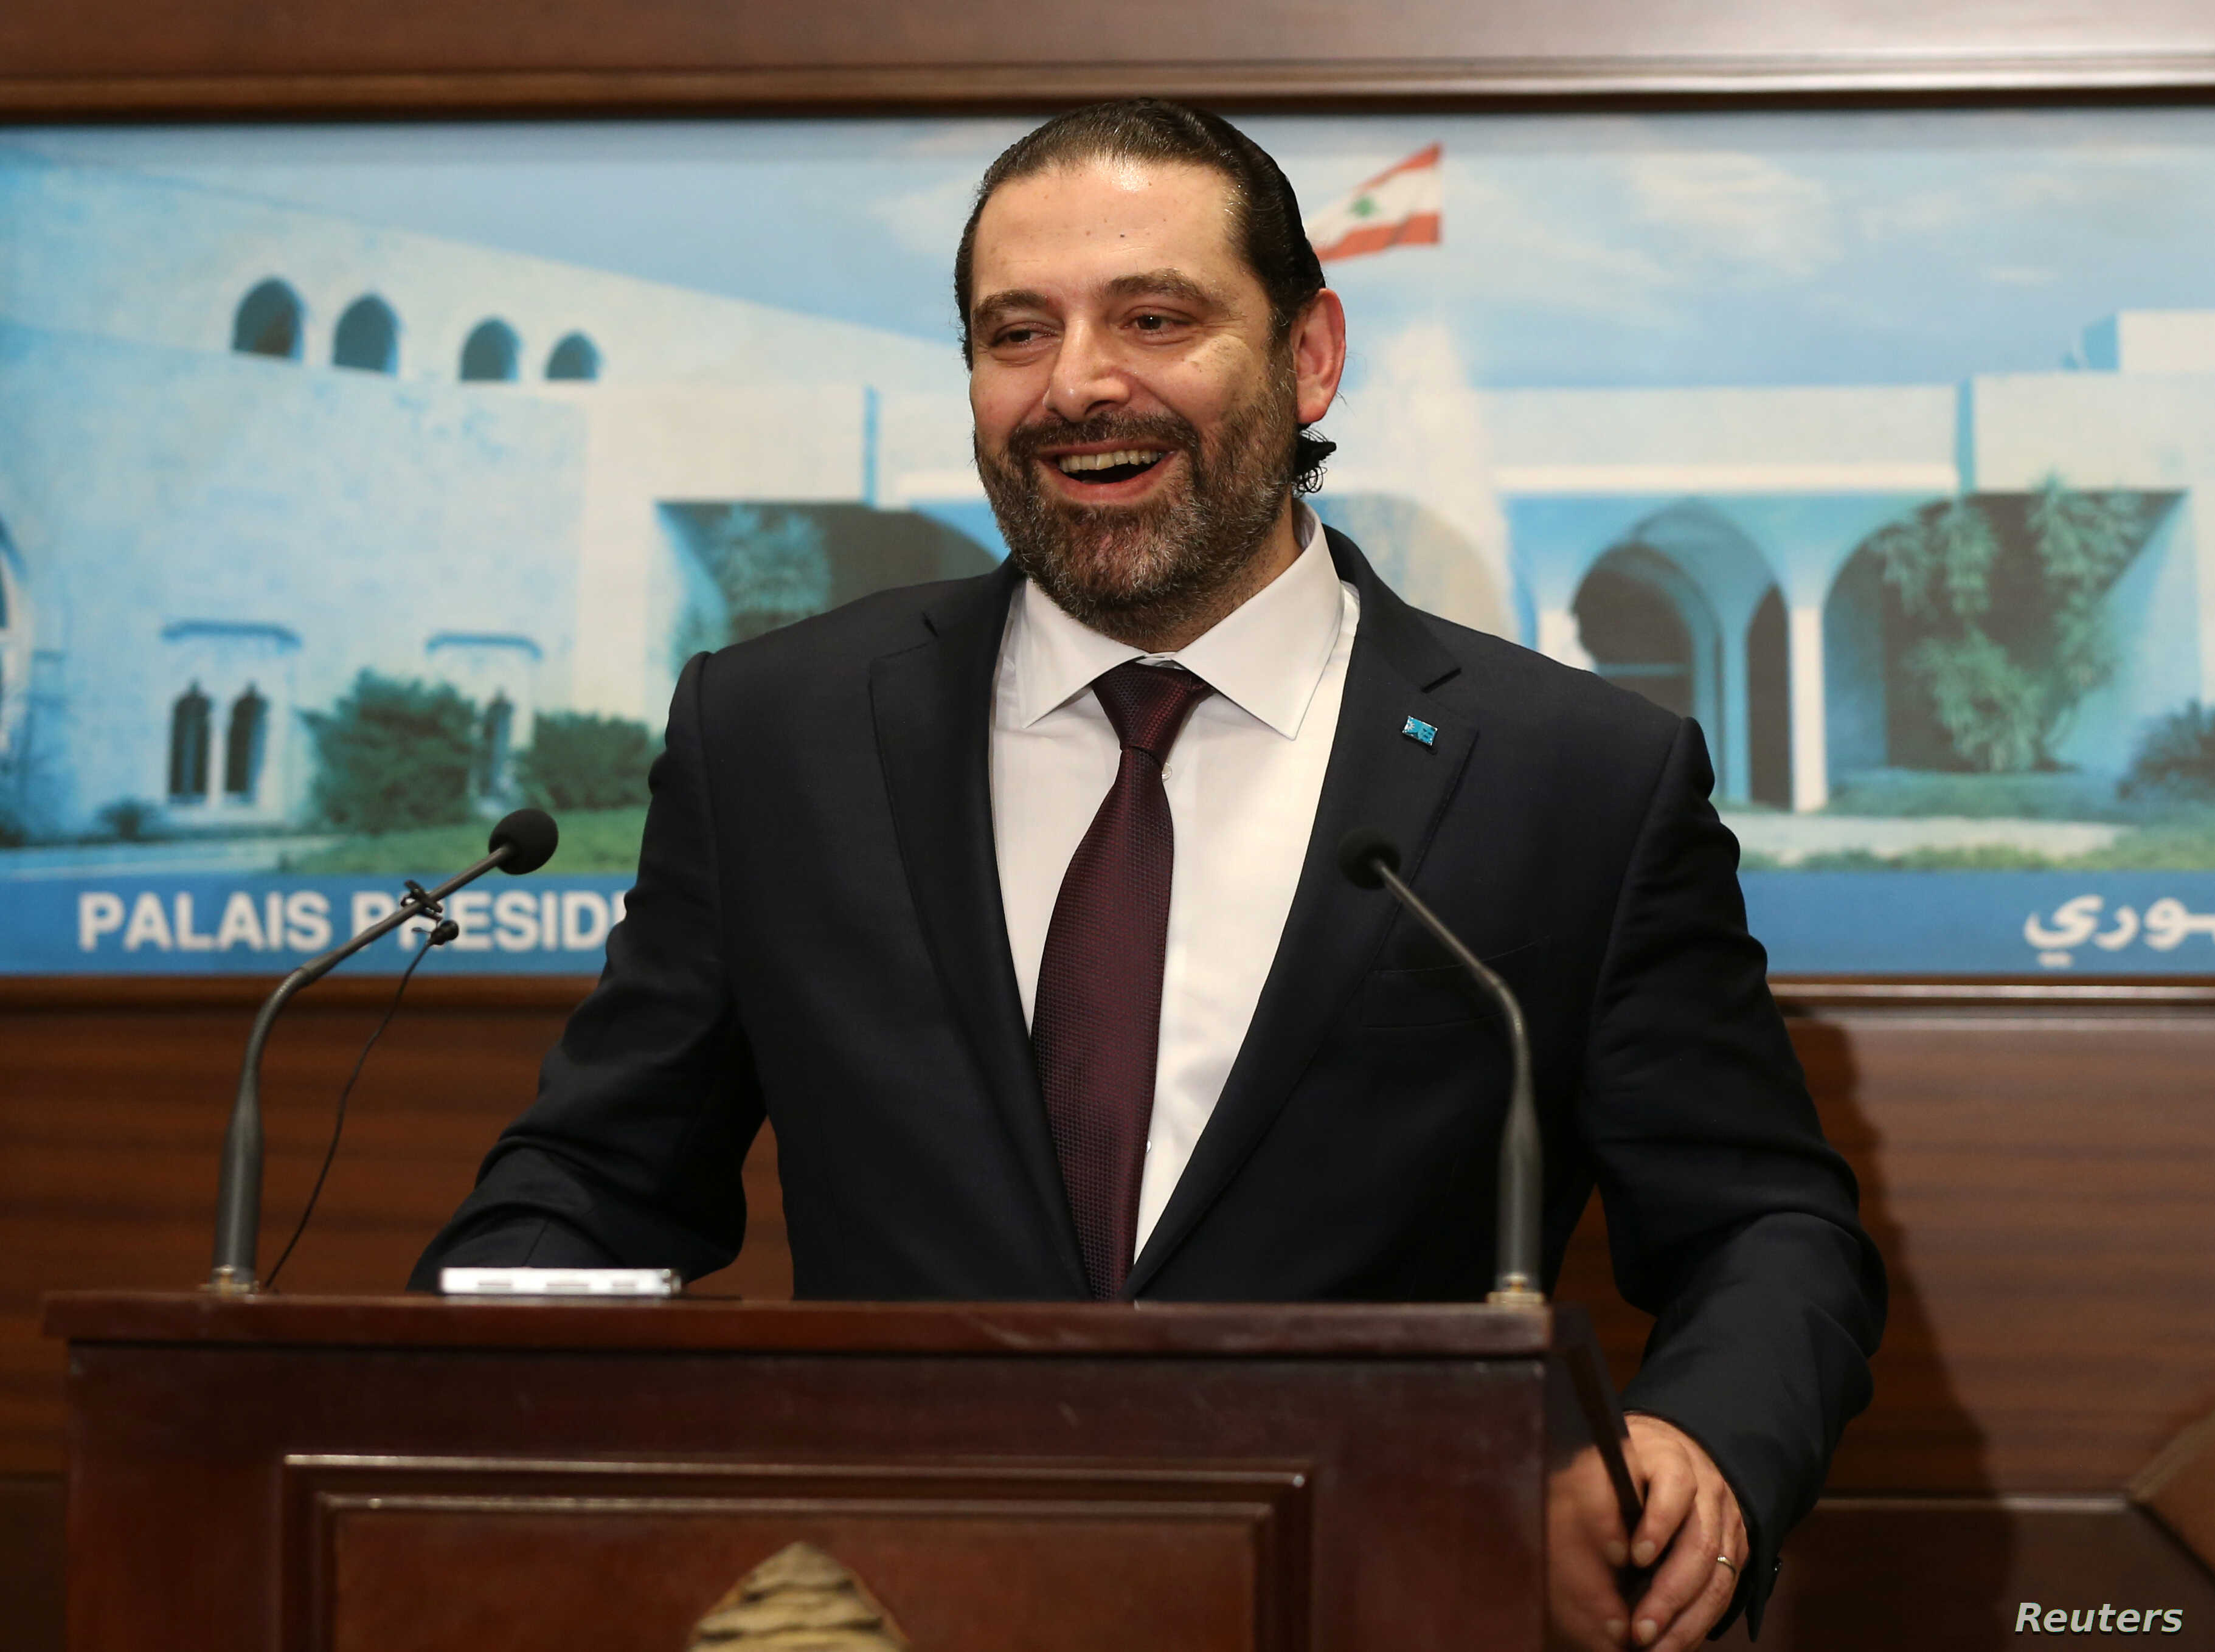 Lebanon's Prime Minister Saad al-Hariri reacts, after the announcement of the new government at the presidential palace in Baabda, Lebanon, Jan. 31, 2019.